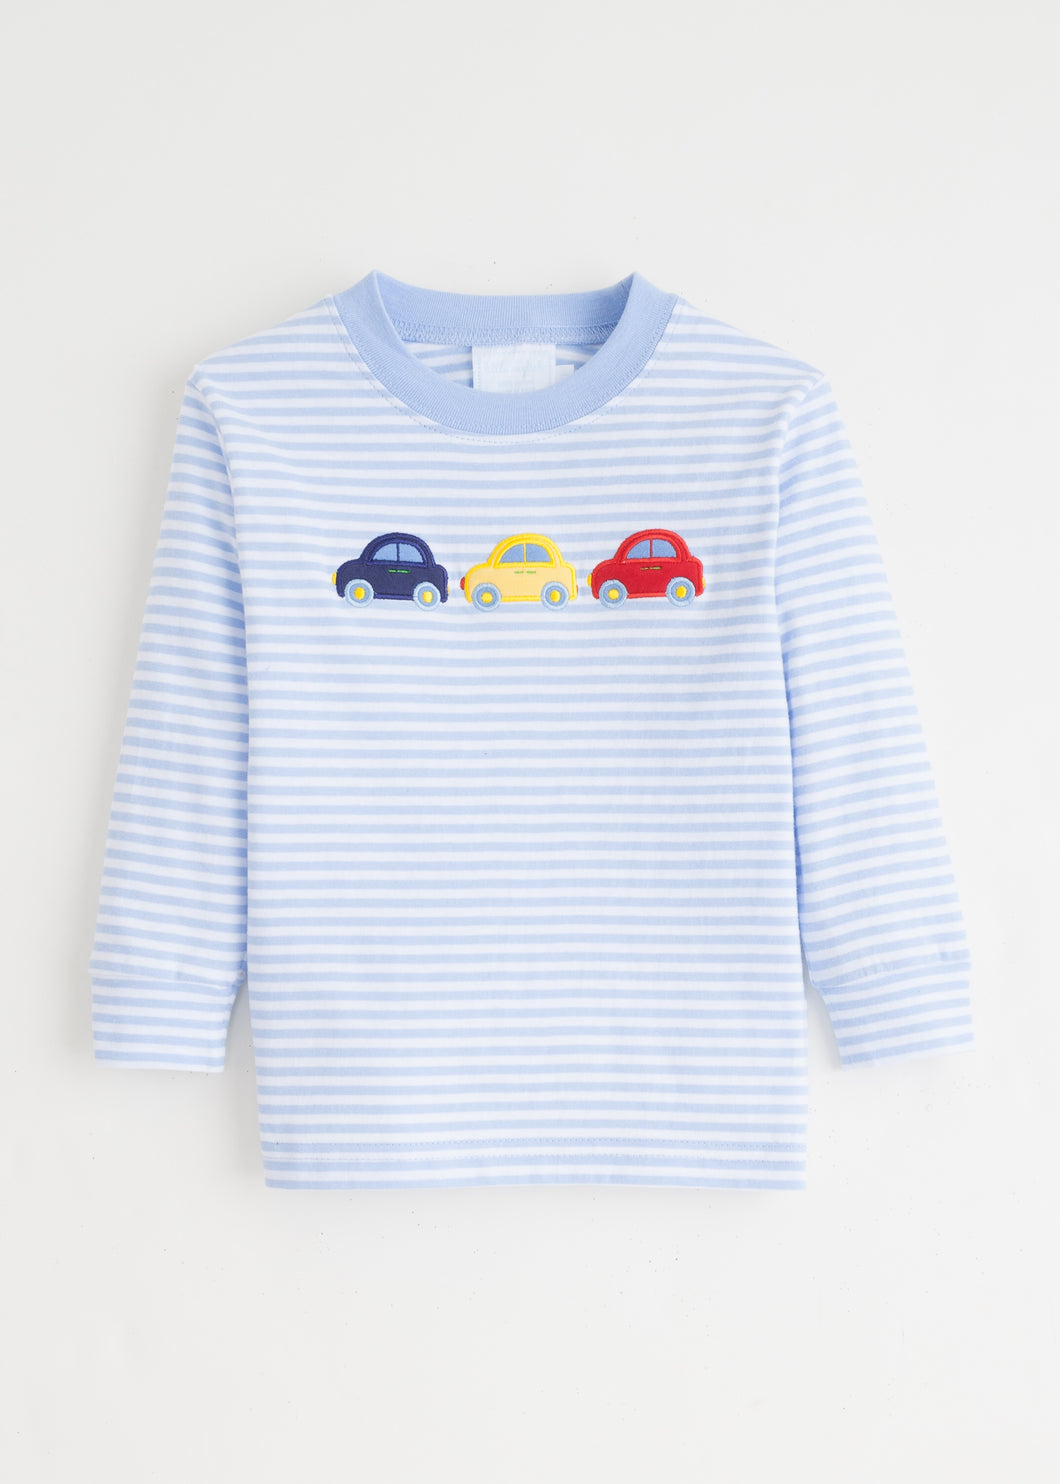 Car Mini Applique TShirt